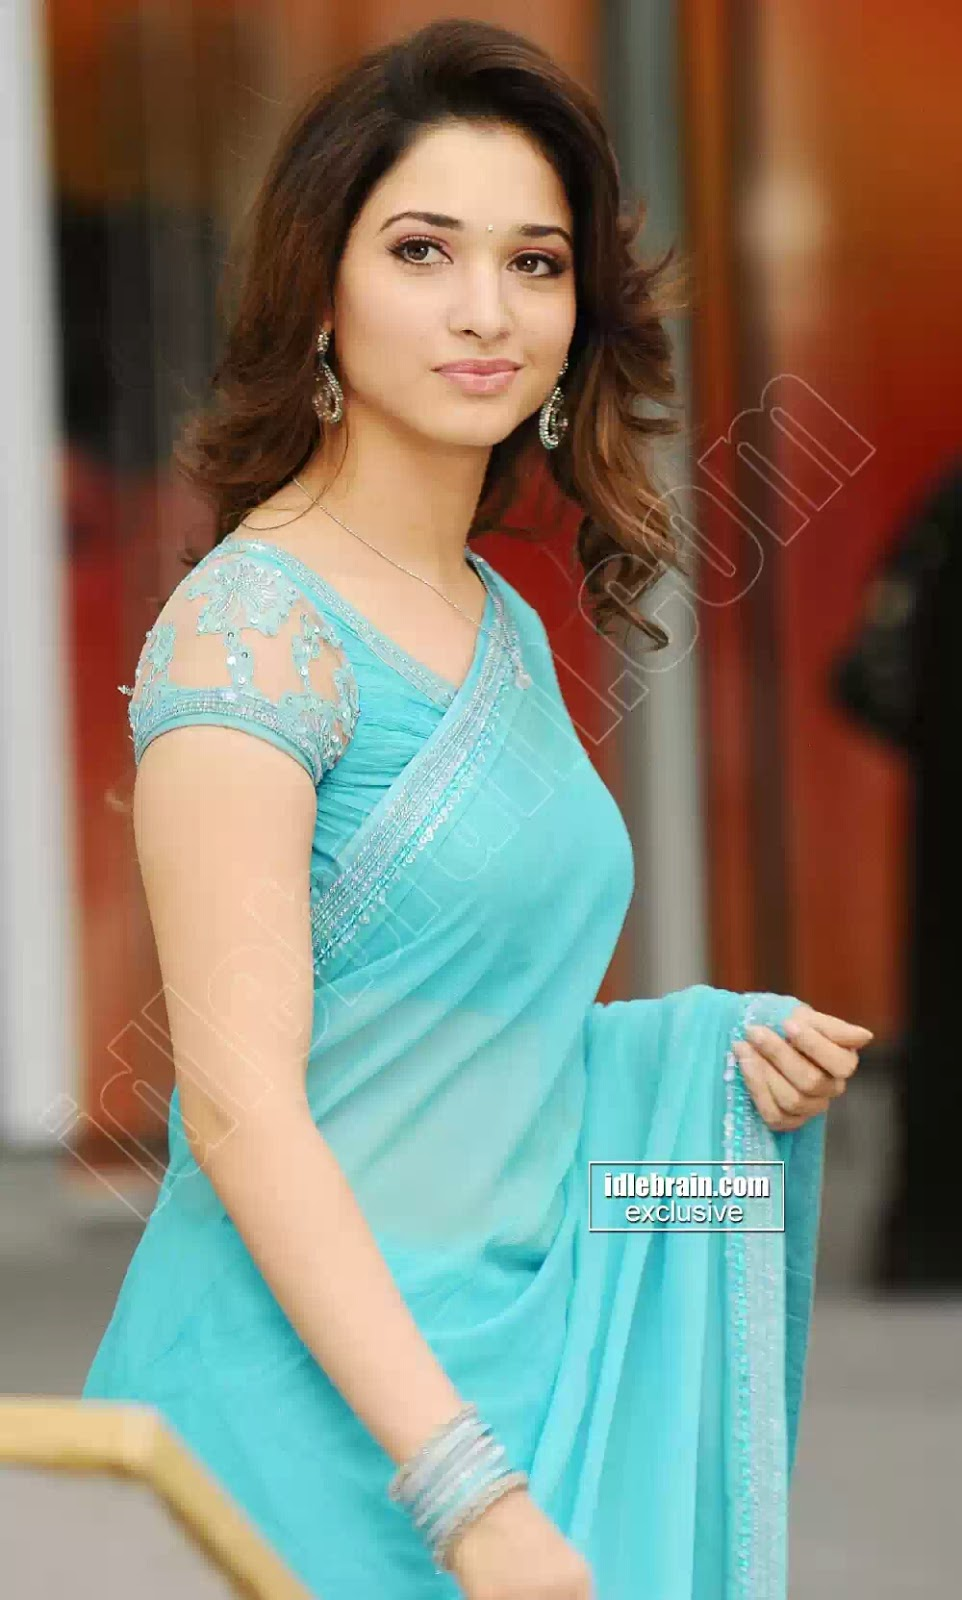 OnLy AcTrEsS: Tamanna Front And Side View Hot In Blue